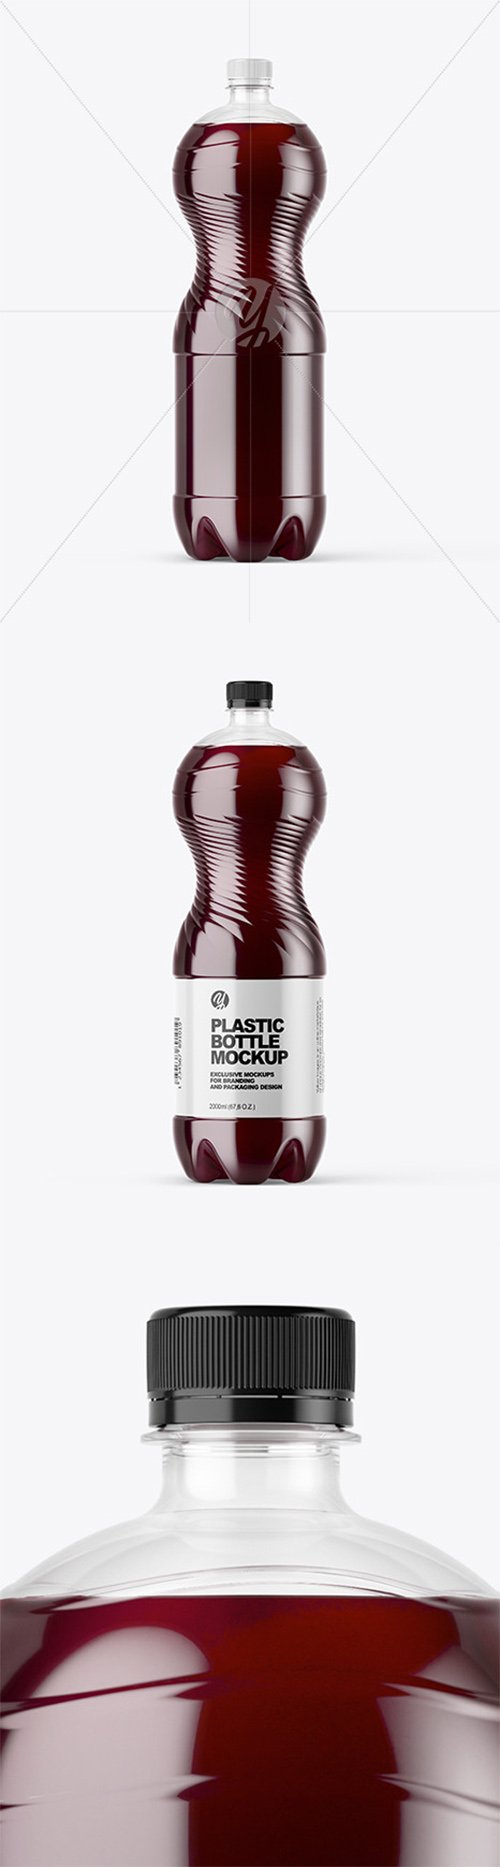 PET Bottle with Red Grape Drink Mockup 65497